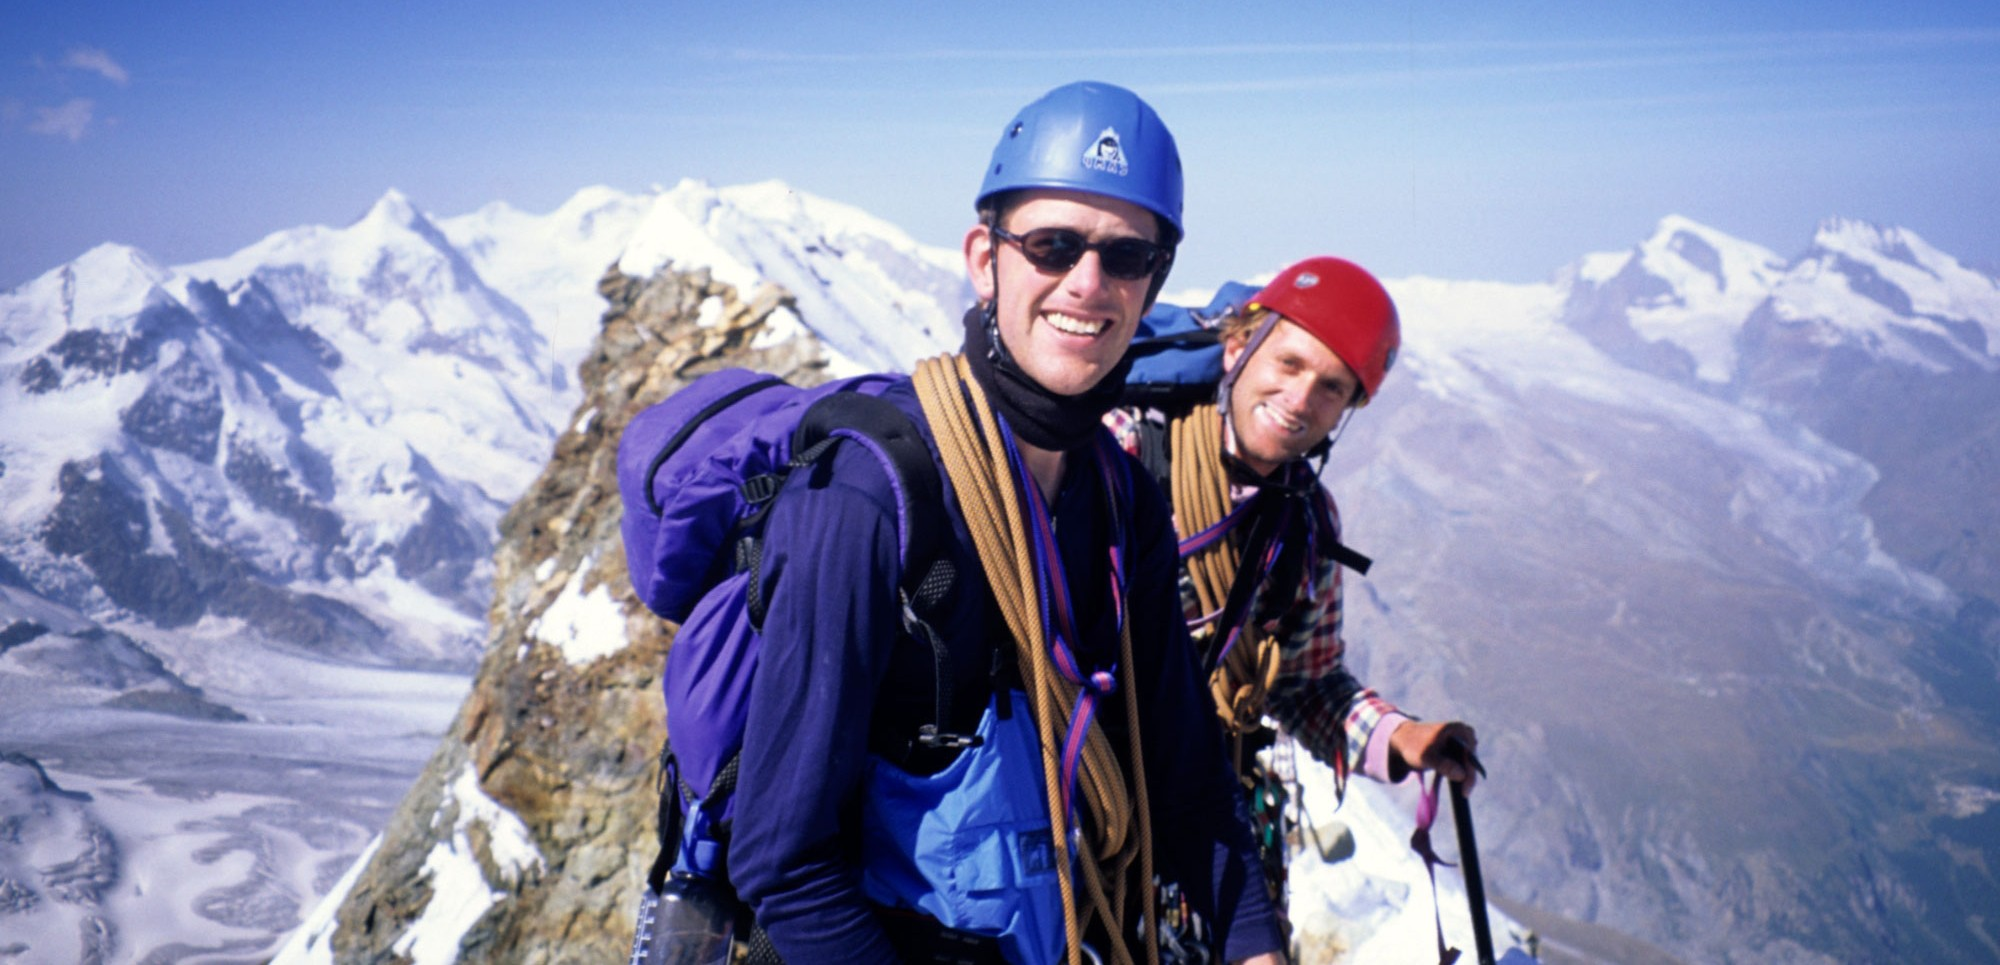 Geoffrey Stanford and Tom Clowes on the summit of the Matterhorn